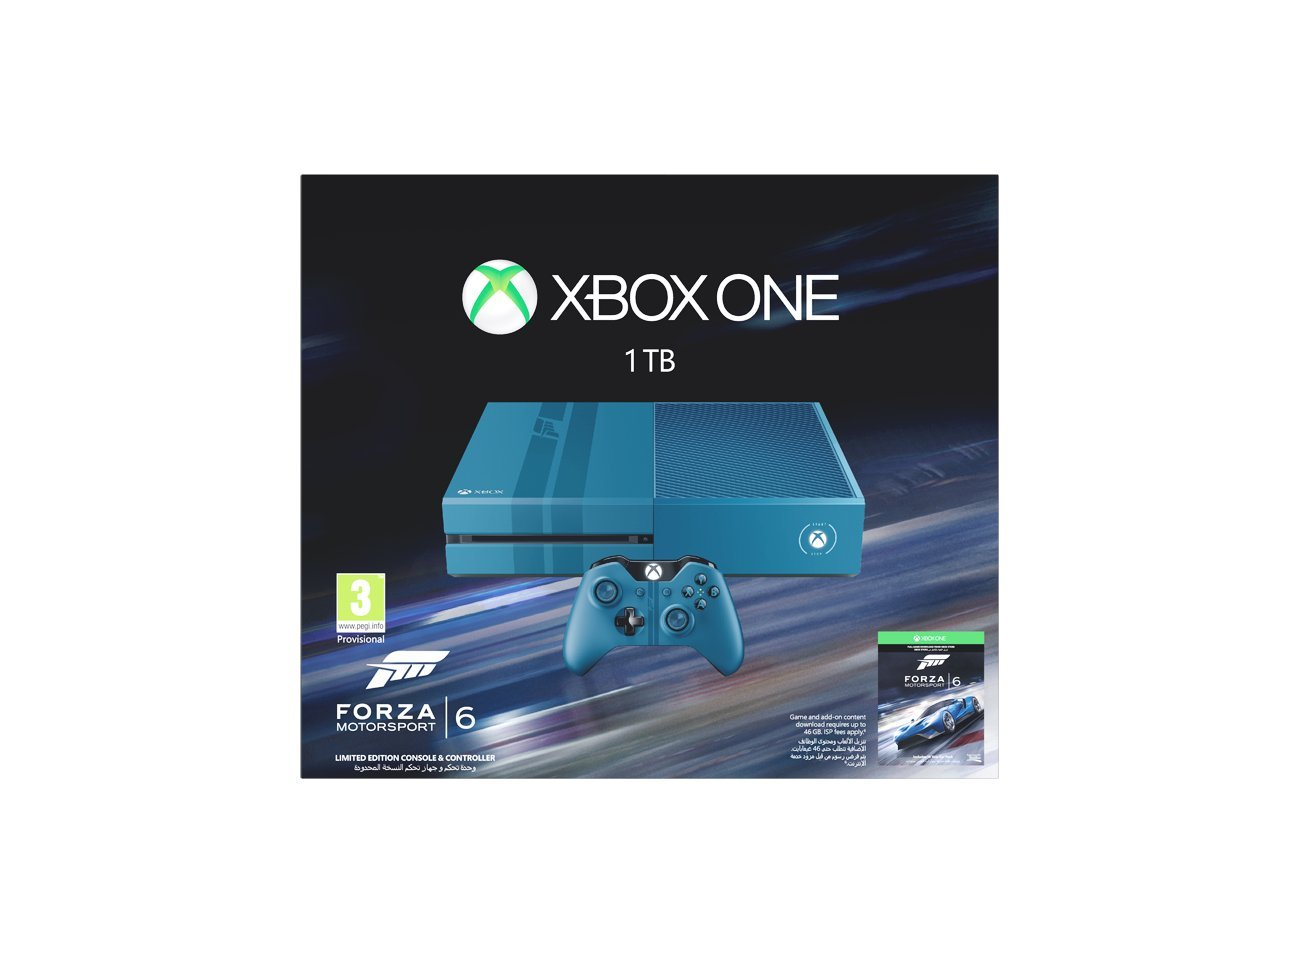 a8b3d54774b Xbox One Limited Edition 1TB Forza Motorsport 6 Bundle: Amazon.co.uk: PC &  Video Games